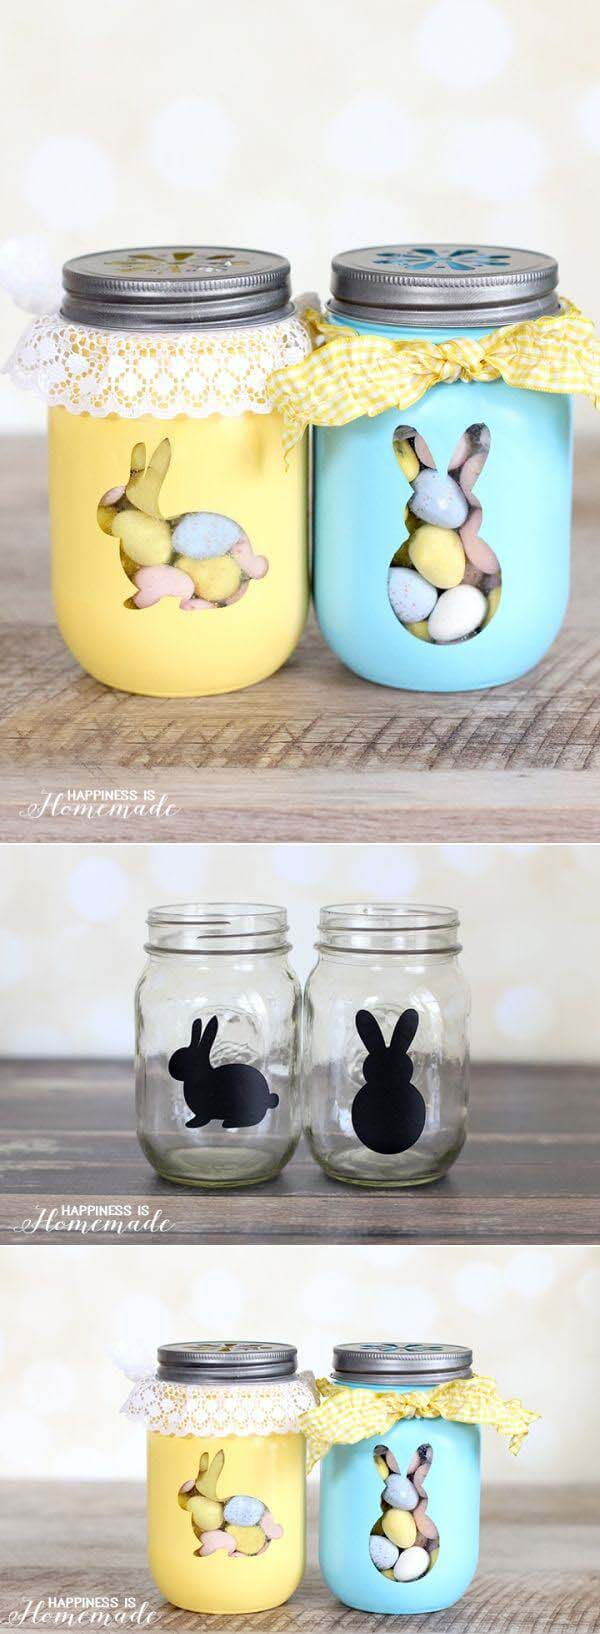 Stencil Some Adorable Rabbit Mason Jar Favors #spring #decor #decorhomeideas